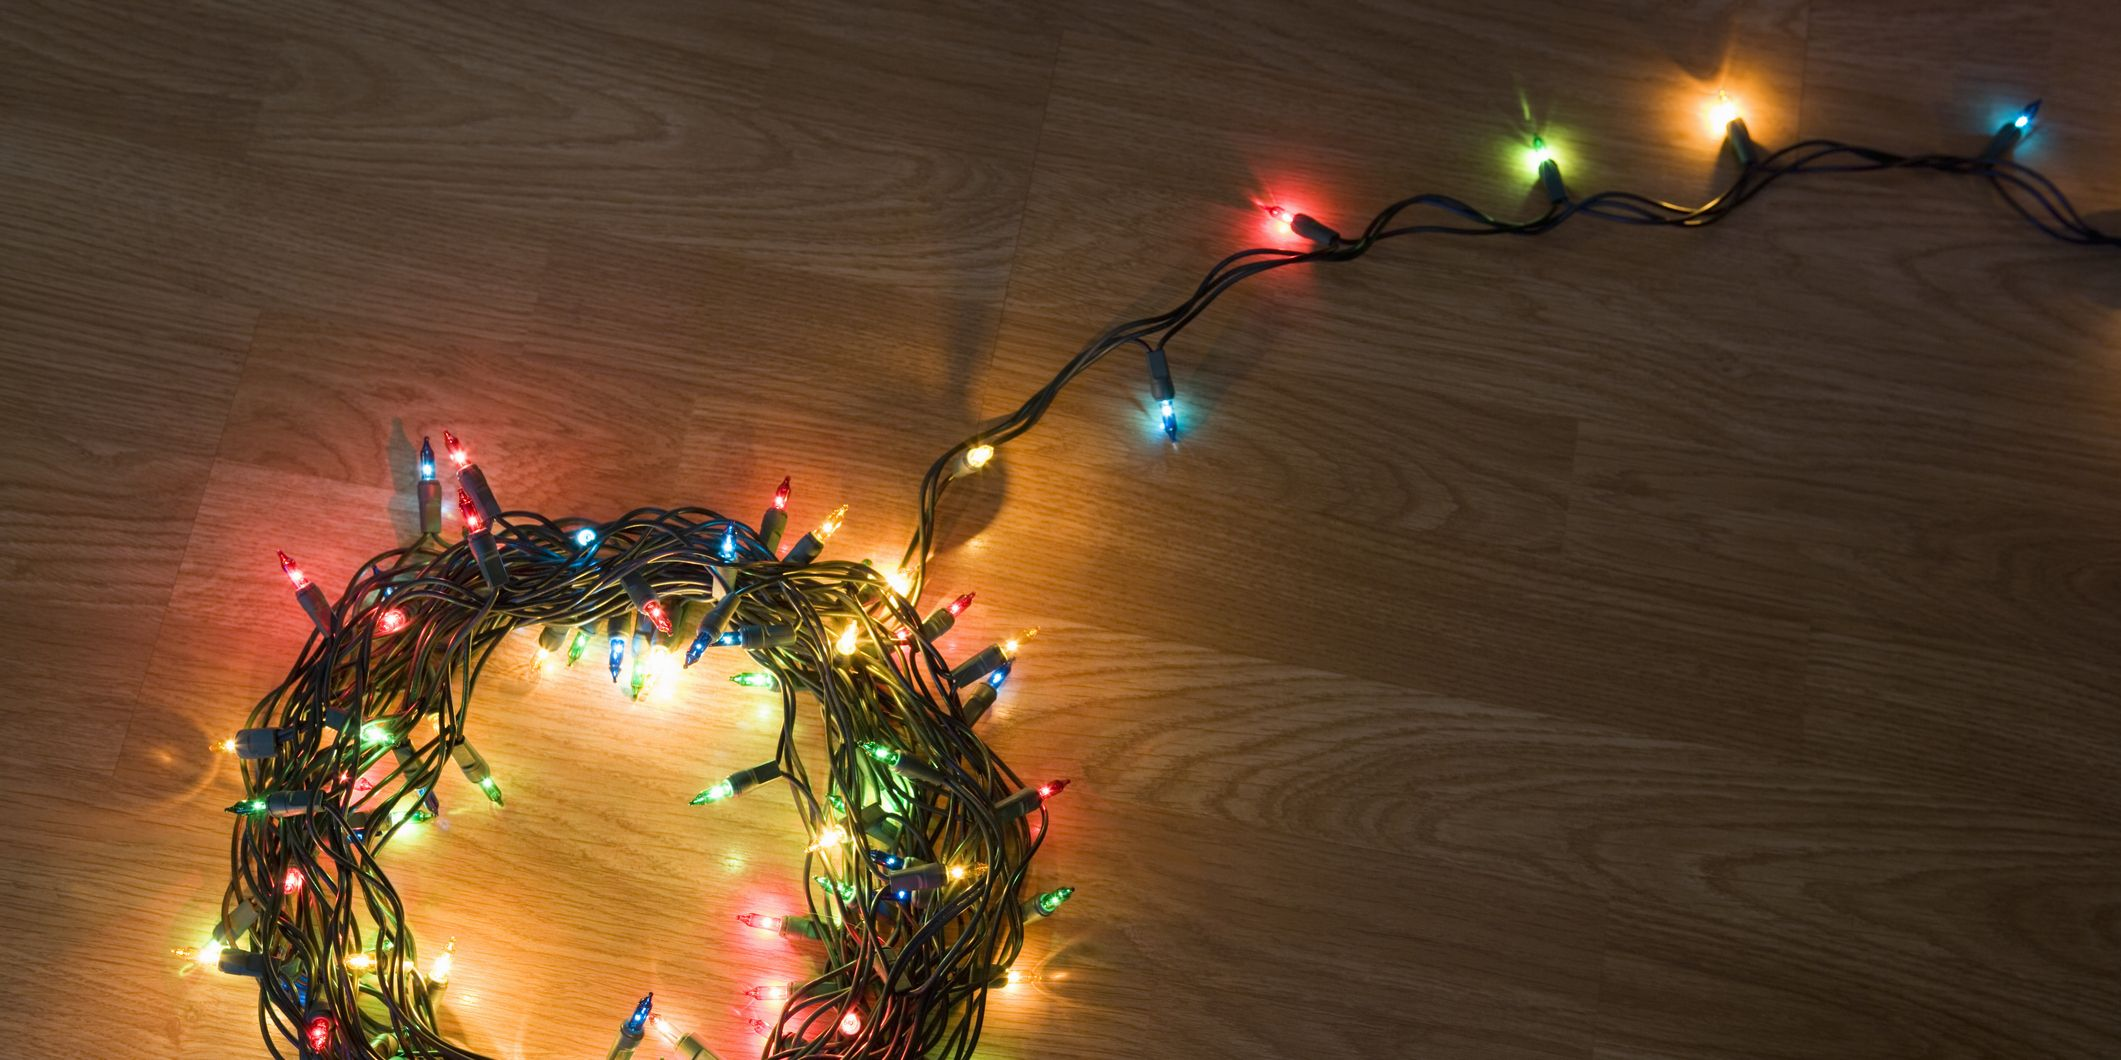 Coil of light christmas lights lying on floor, elevated view